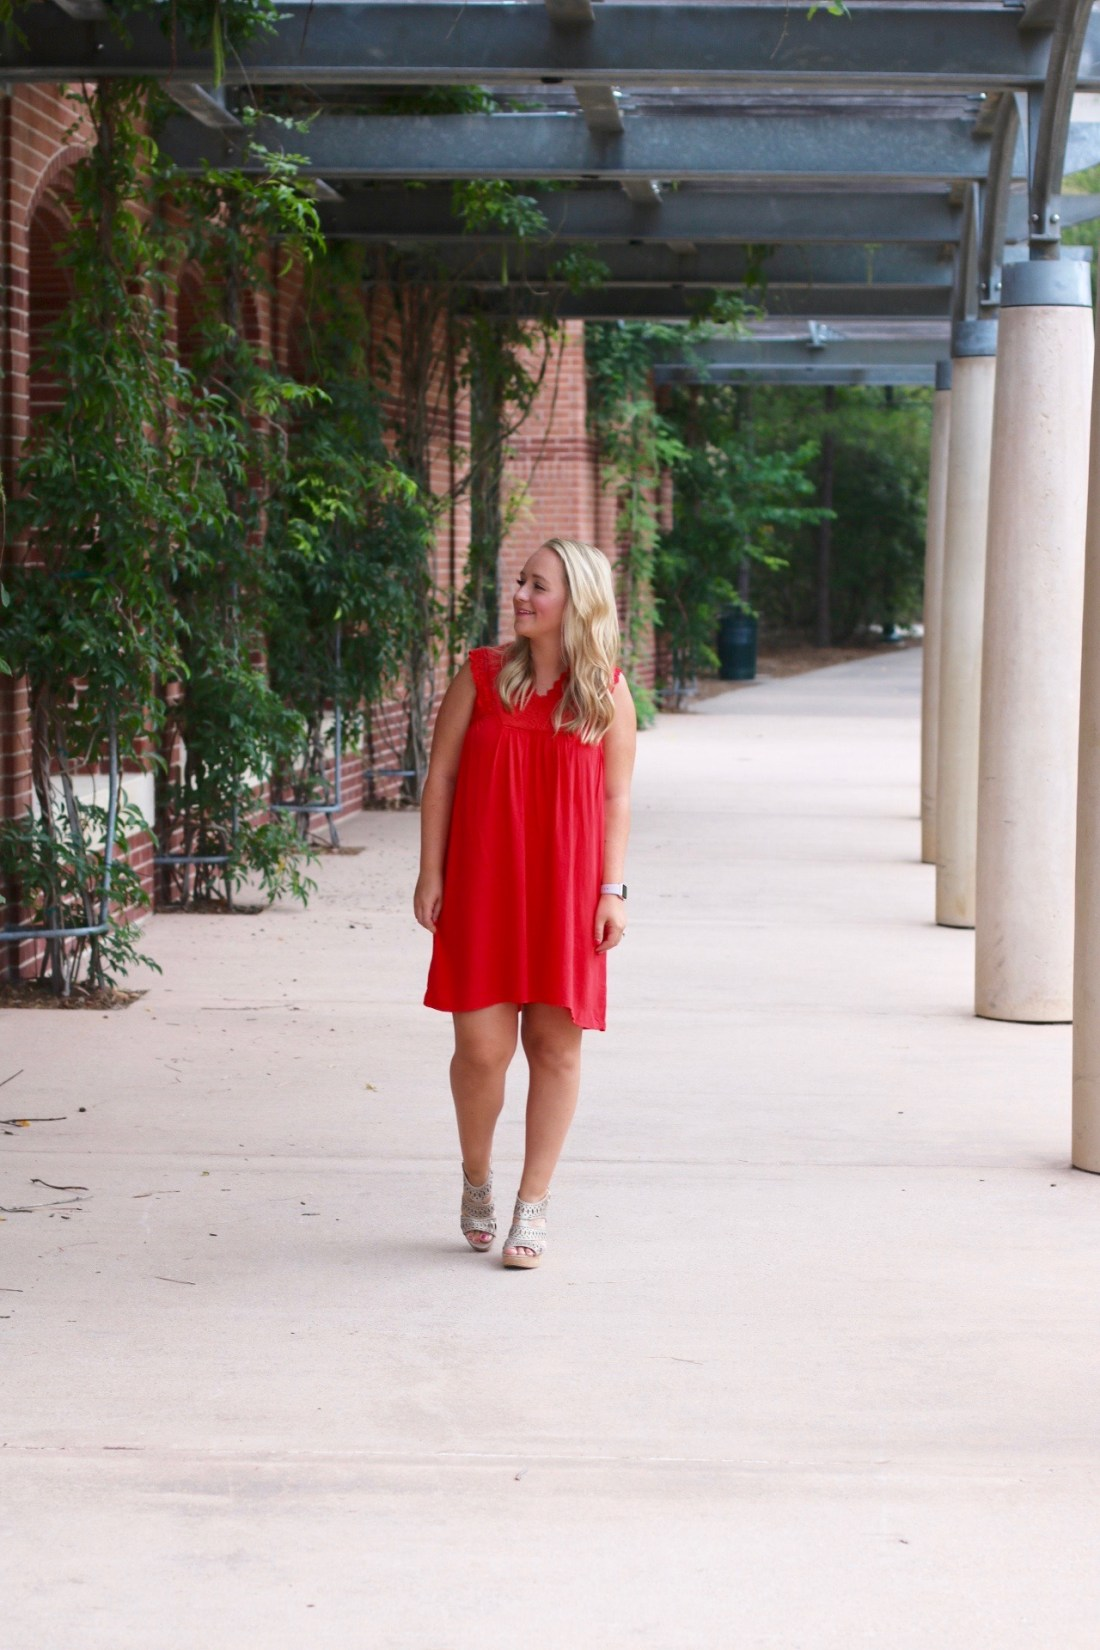 Red Summer Dress #sundress #reddress #theimpeccablepig